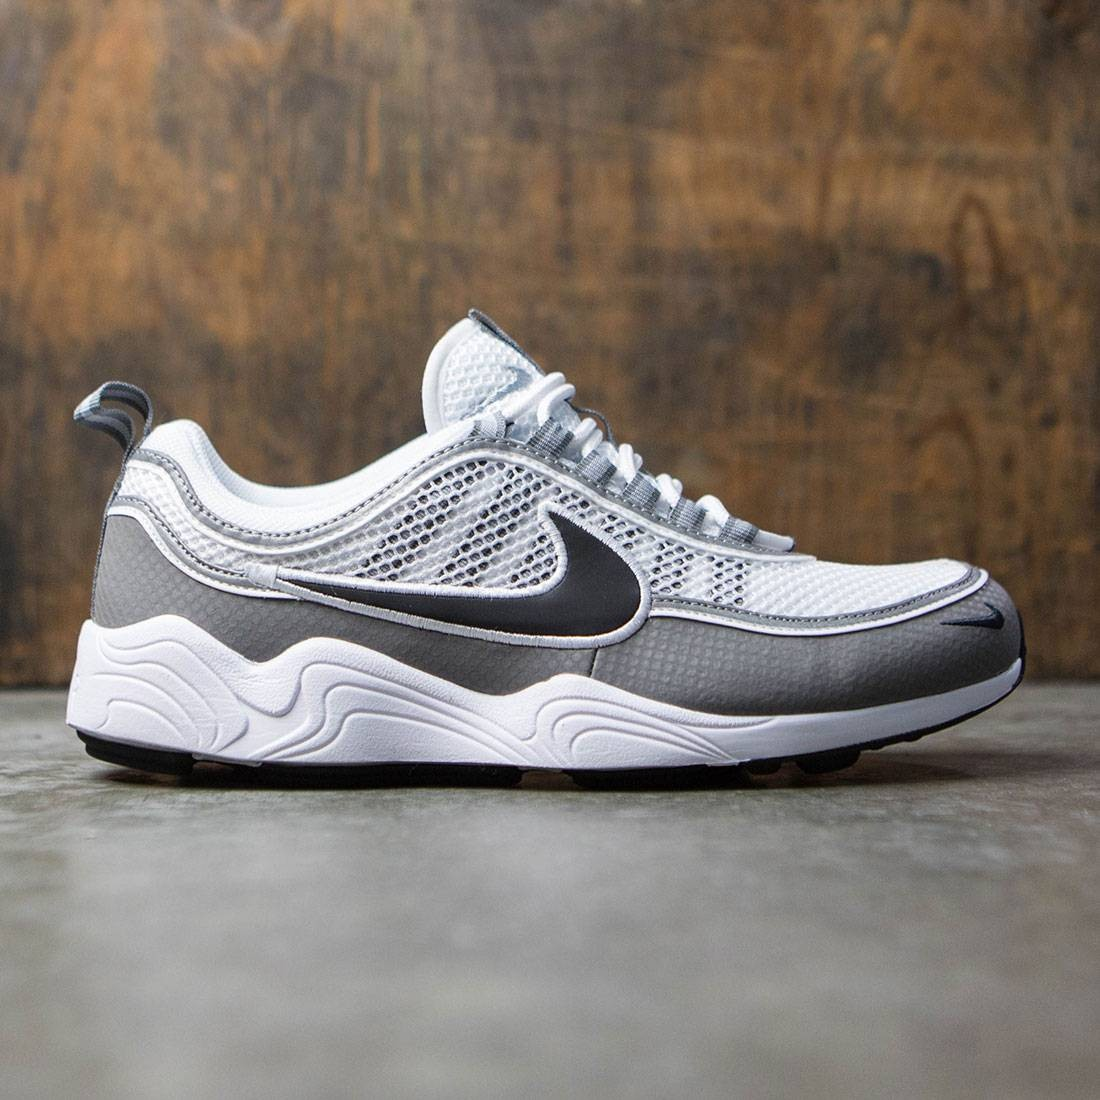 San Francisco 4aa76 11a60 Nike Men Air Zoom Spiridon Qs (white / black-light ash)